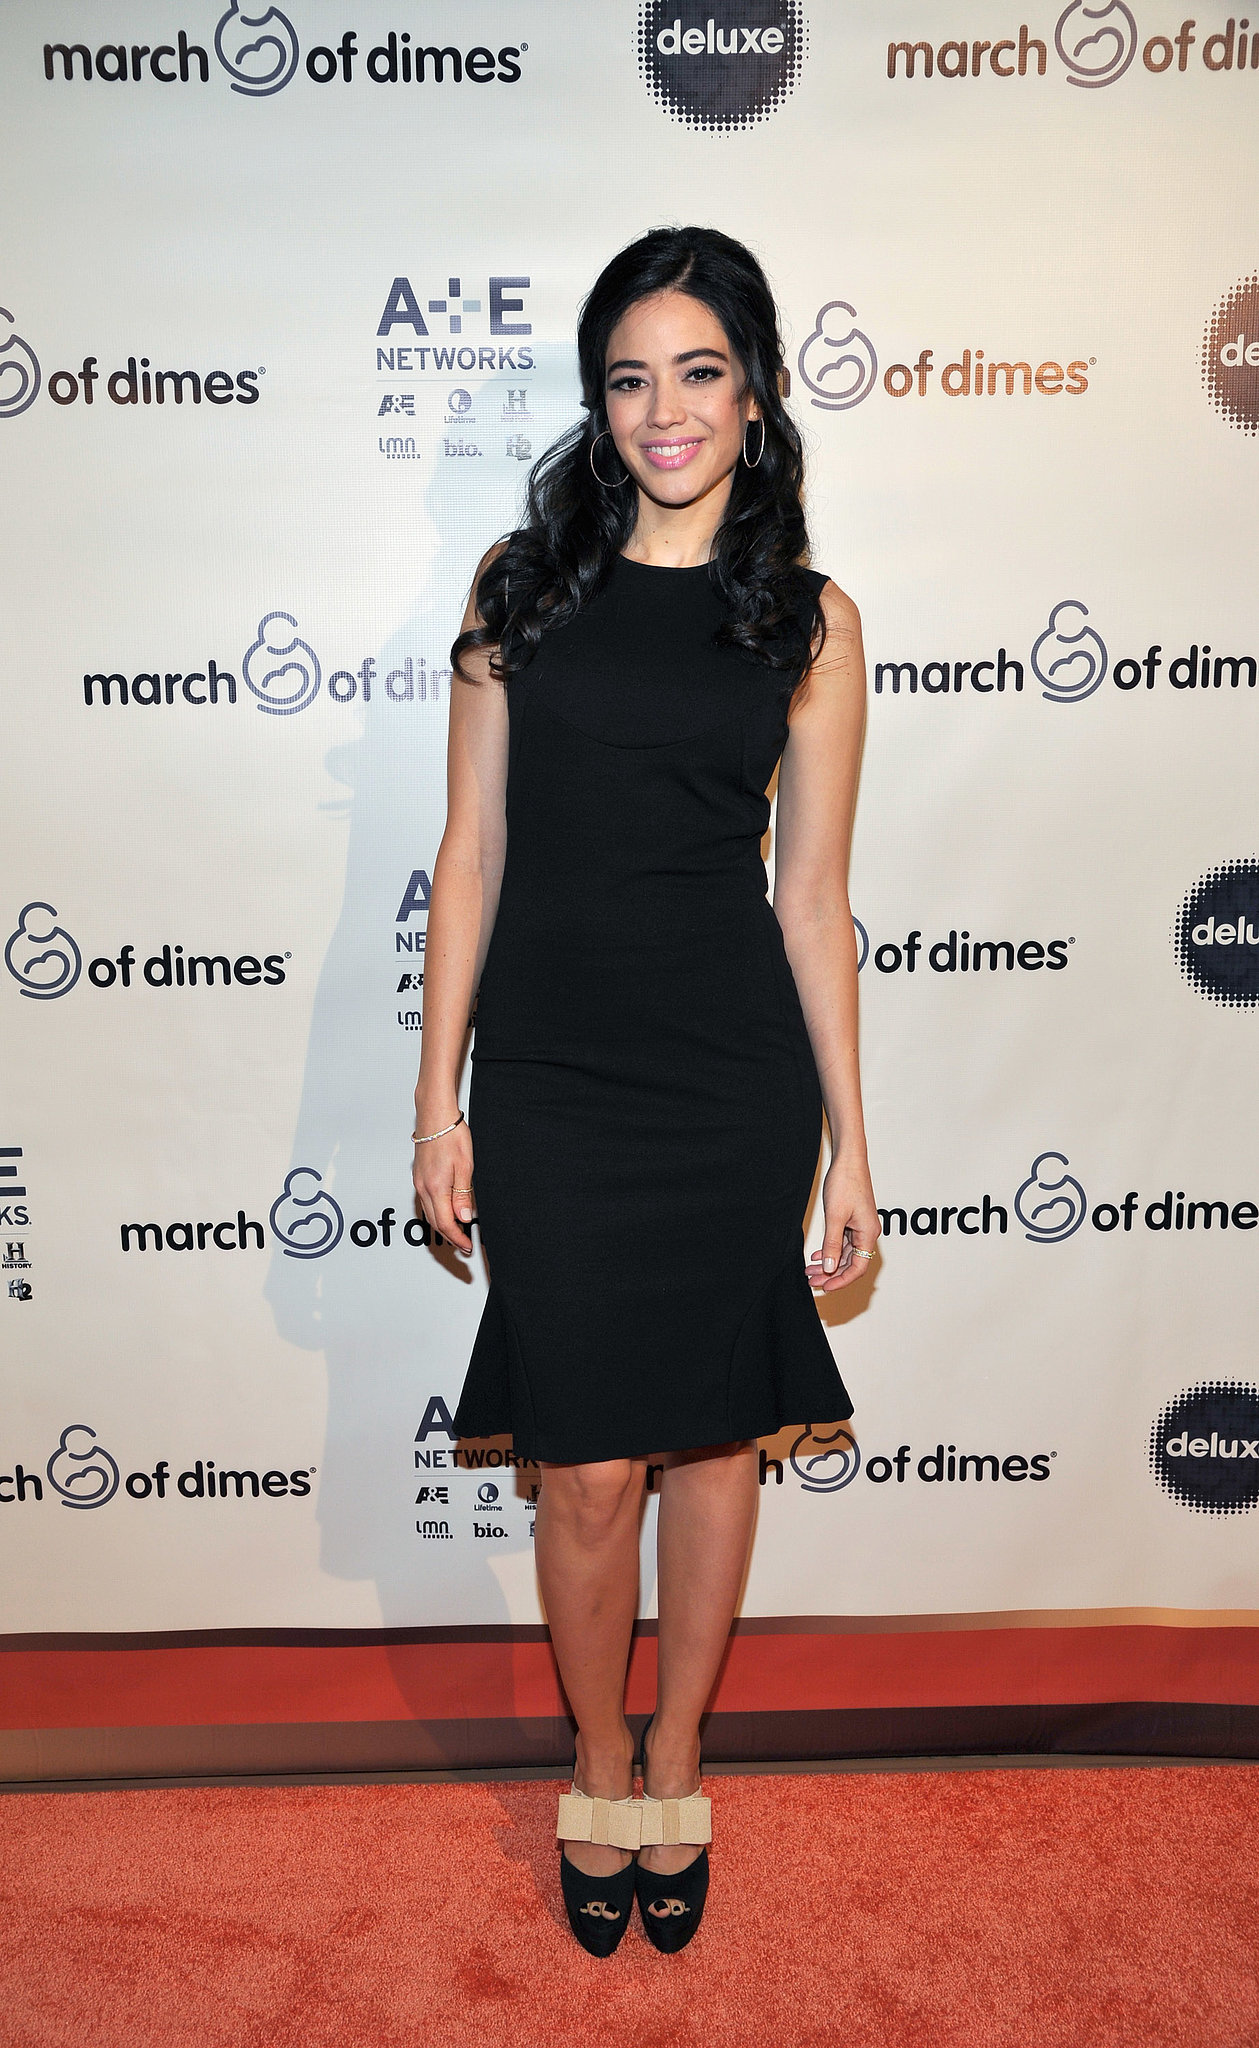 Edy Ganem attended the March of Dimes event.